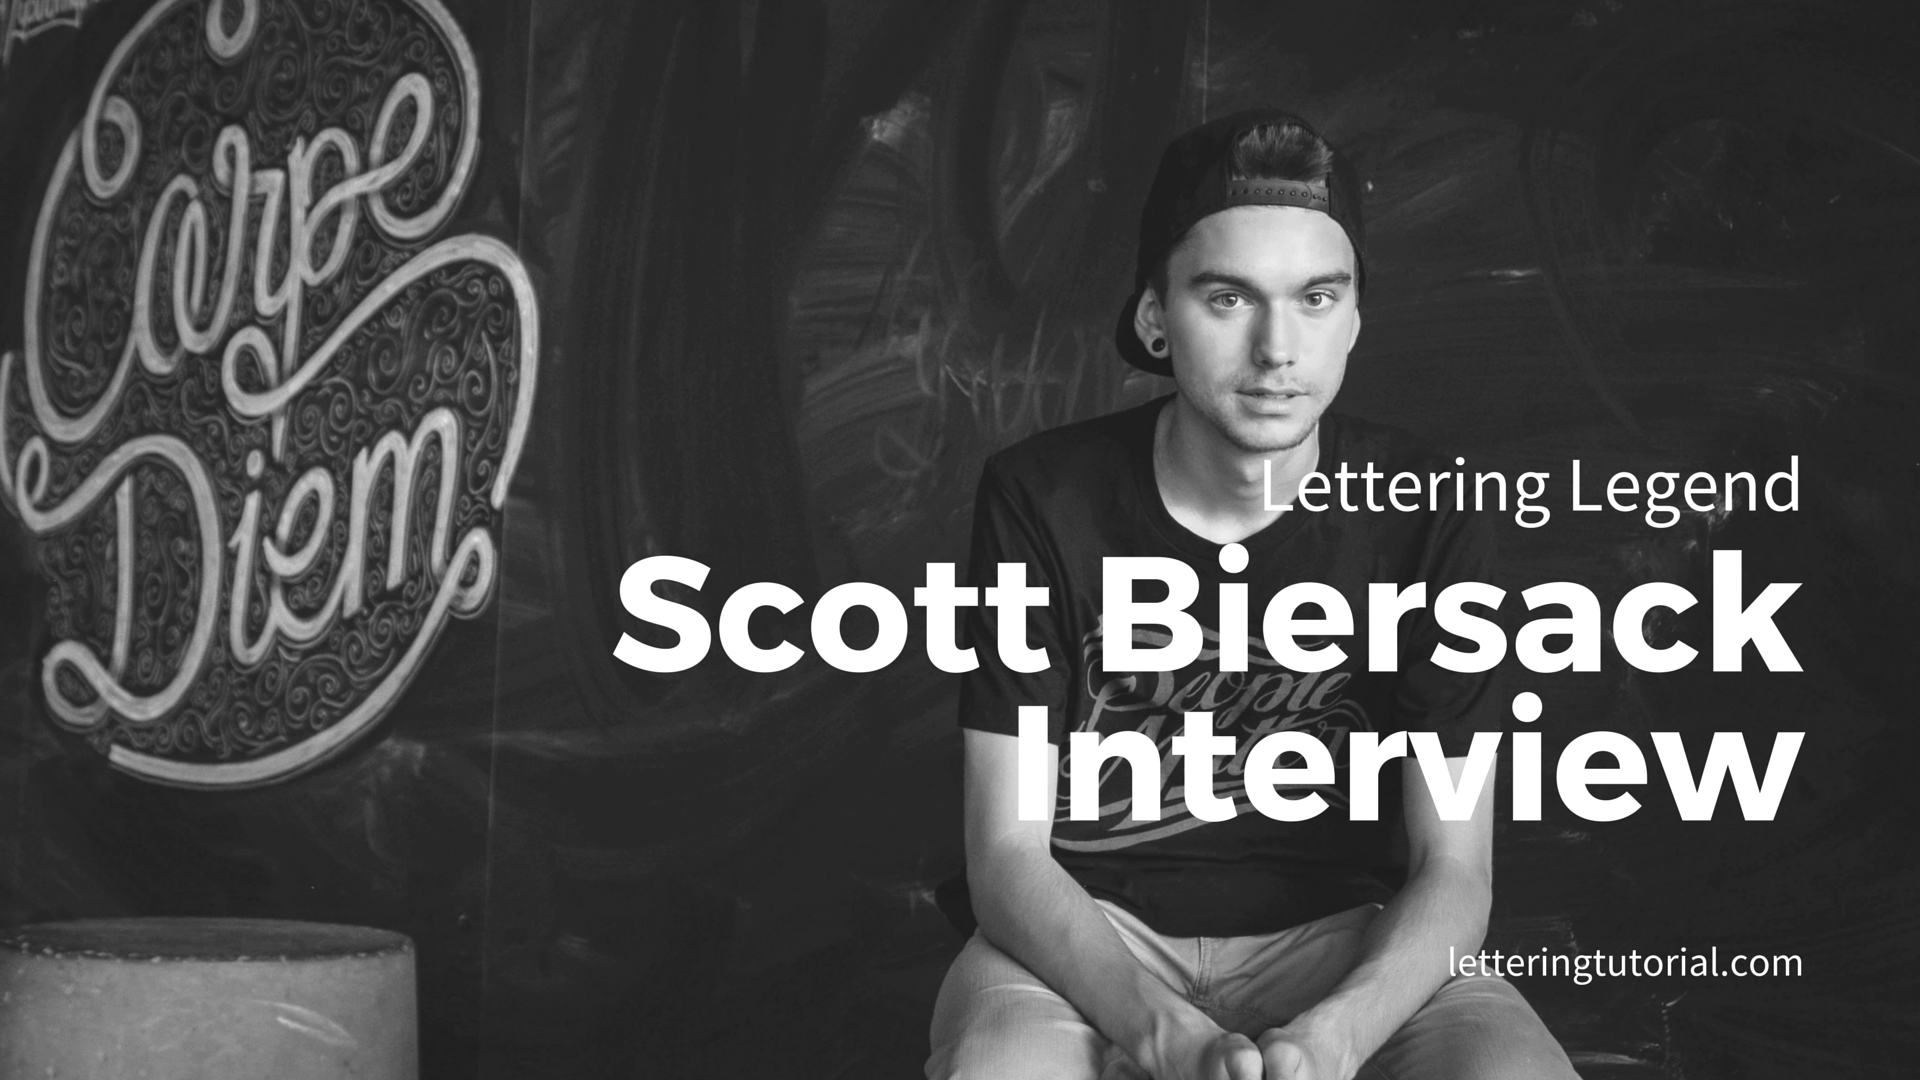 Scott Biersack Interview - Lettering Tutorial